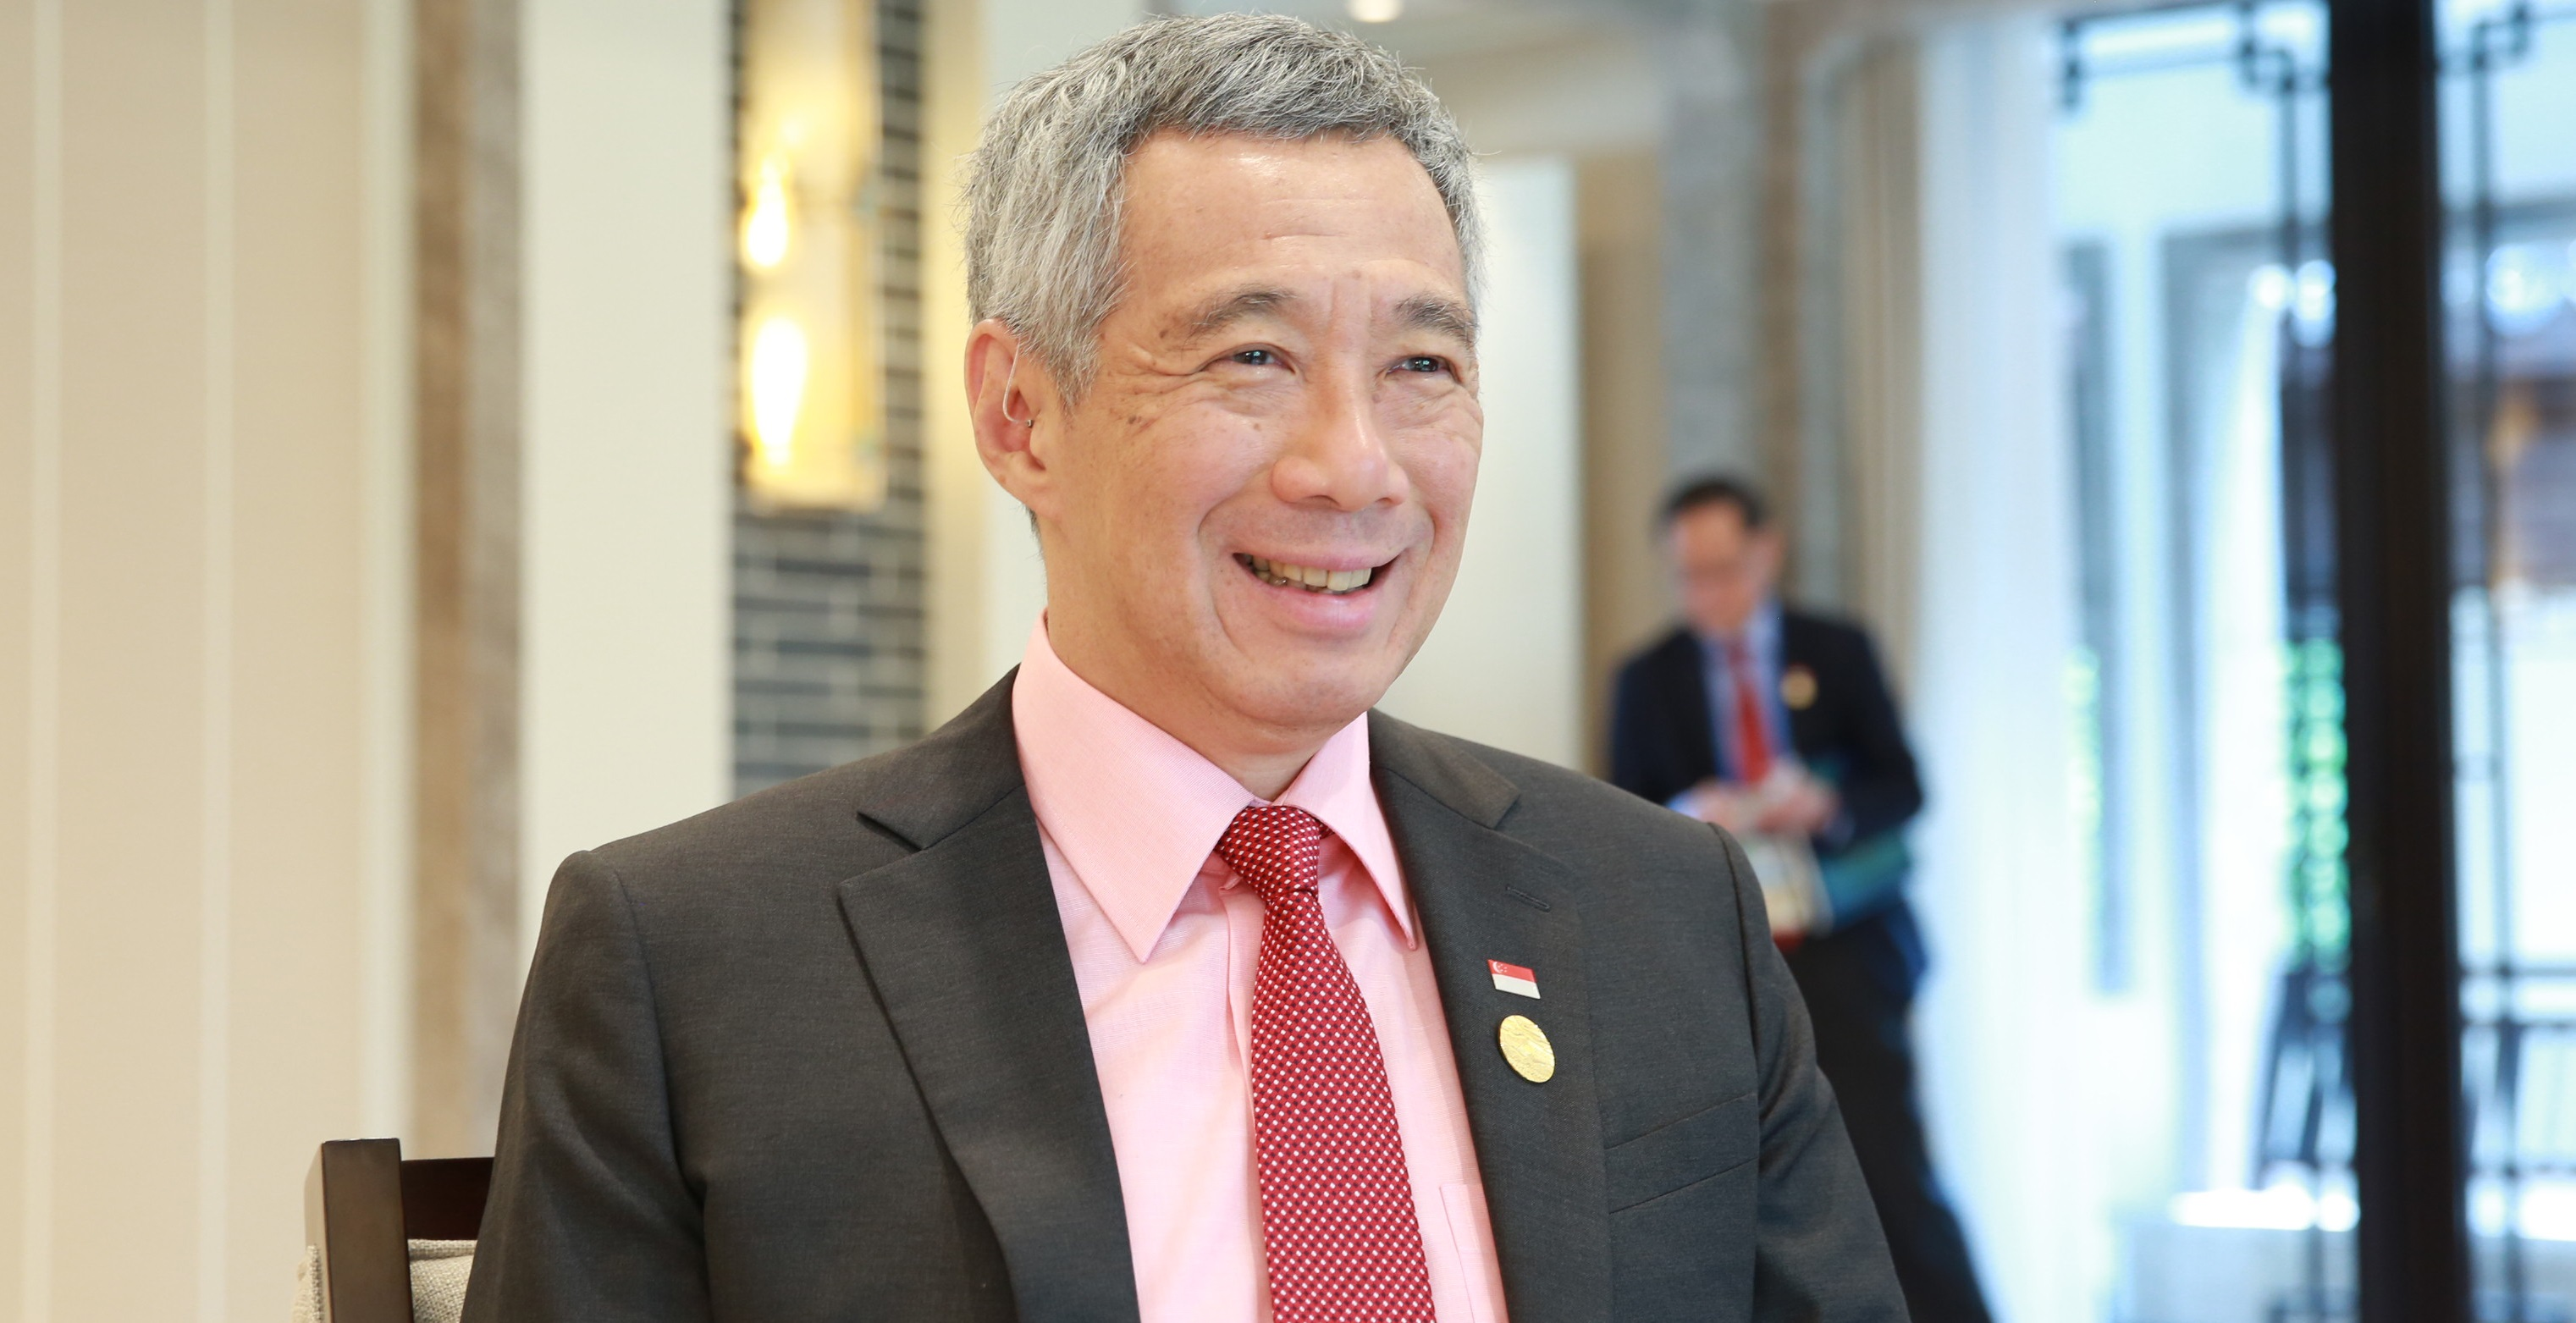 Prime Minister of Singapore Lee Hsien Loong